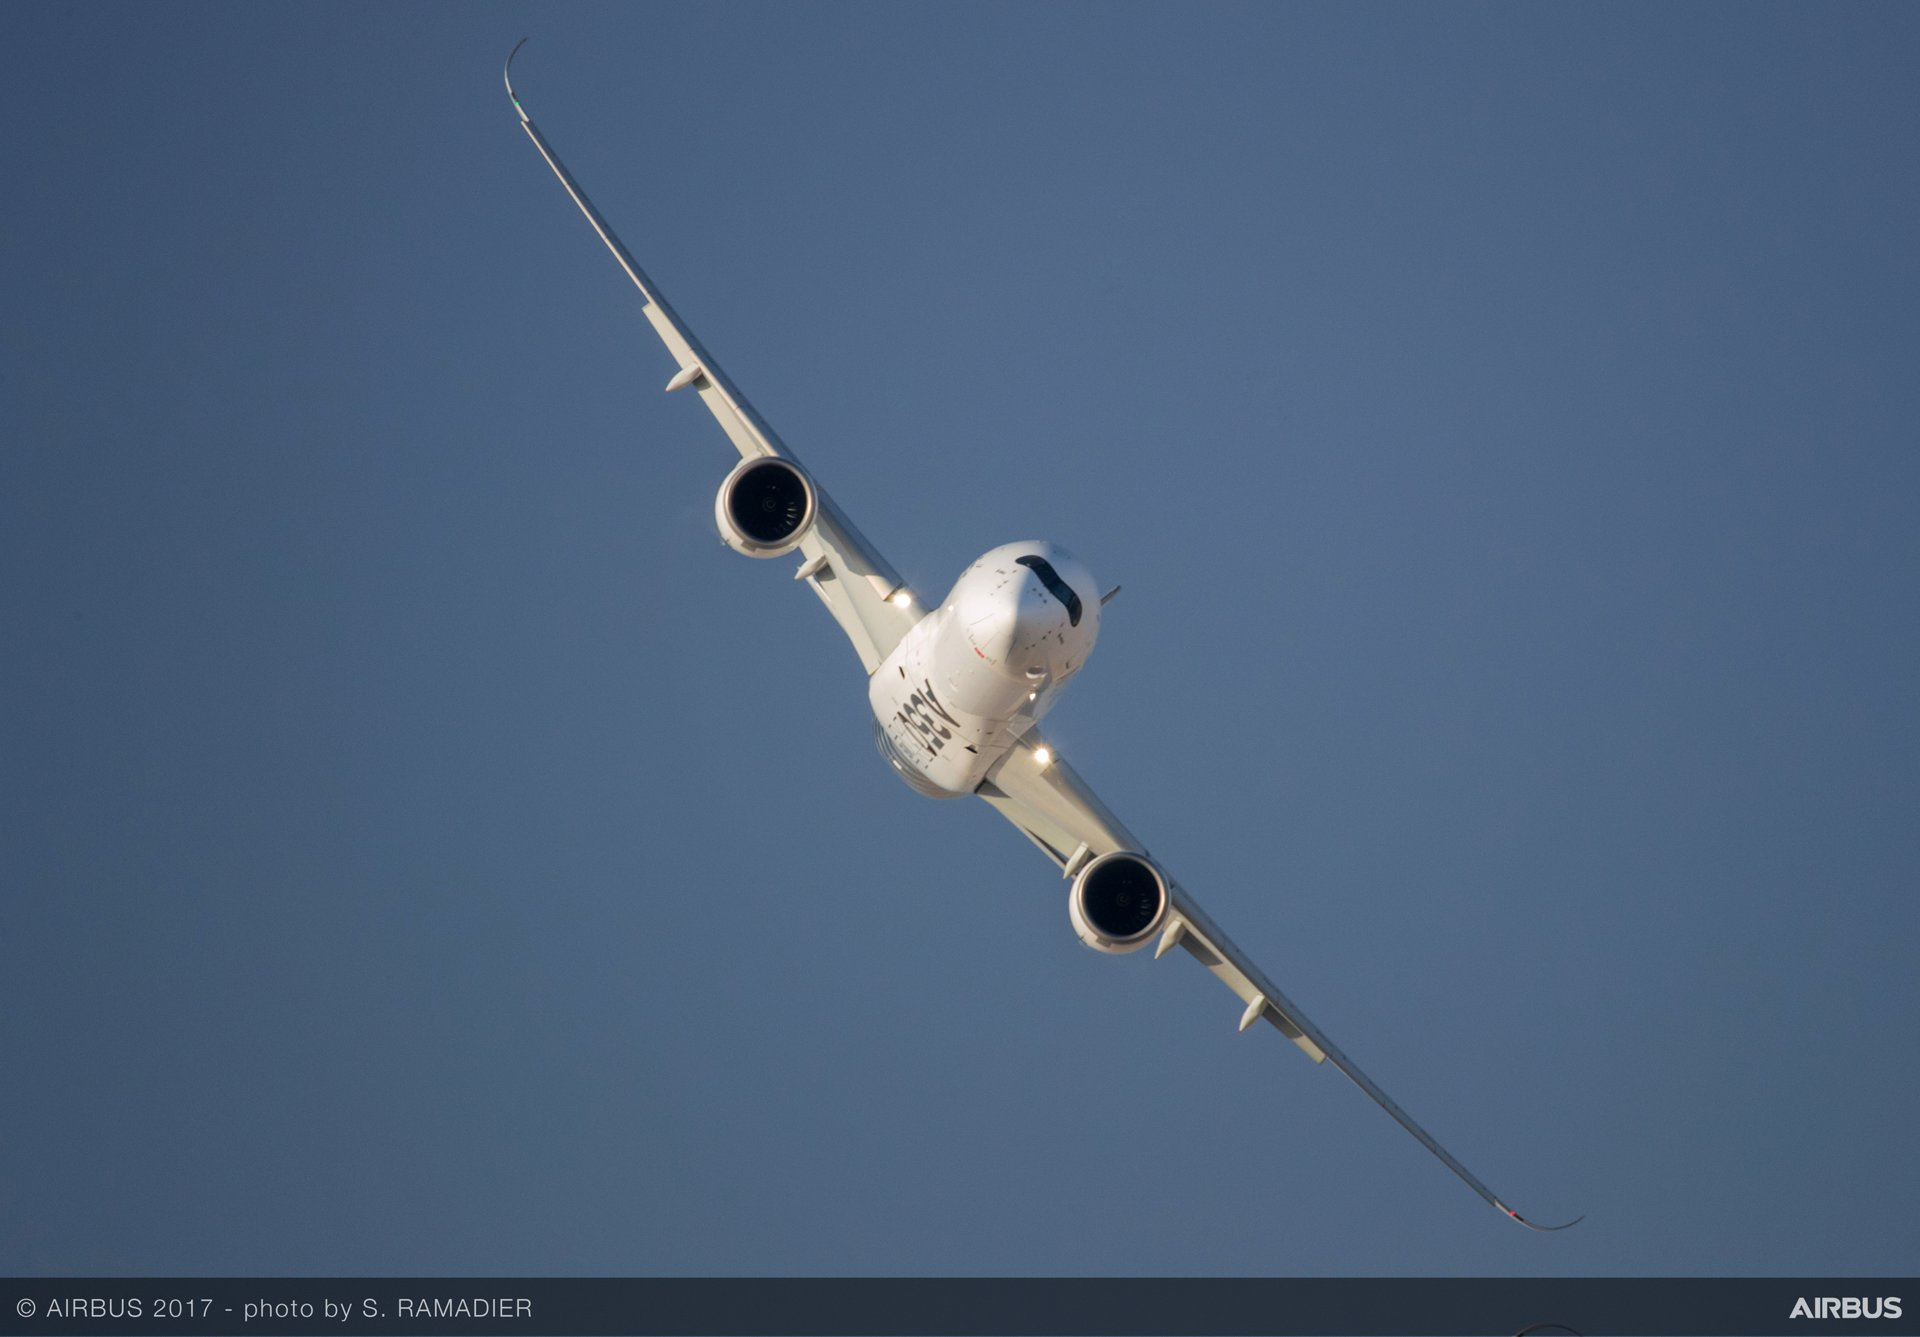 Airbus' A350 XWB took to the skies above Al Maktoum International Airport for a high-profile Dubai Airshow 2017 flying display